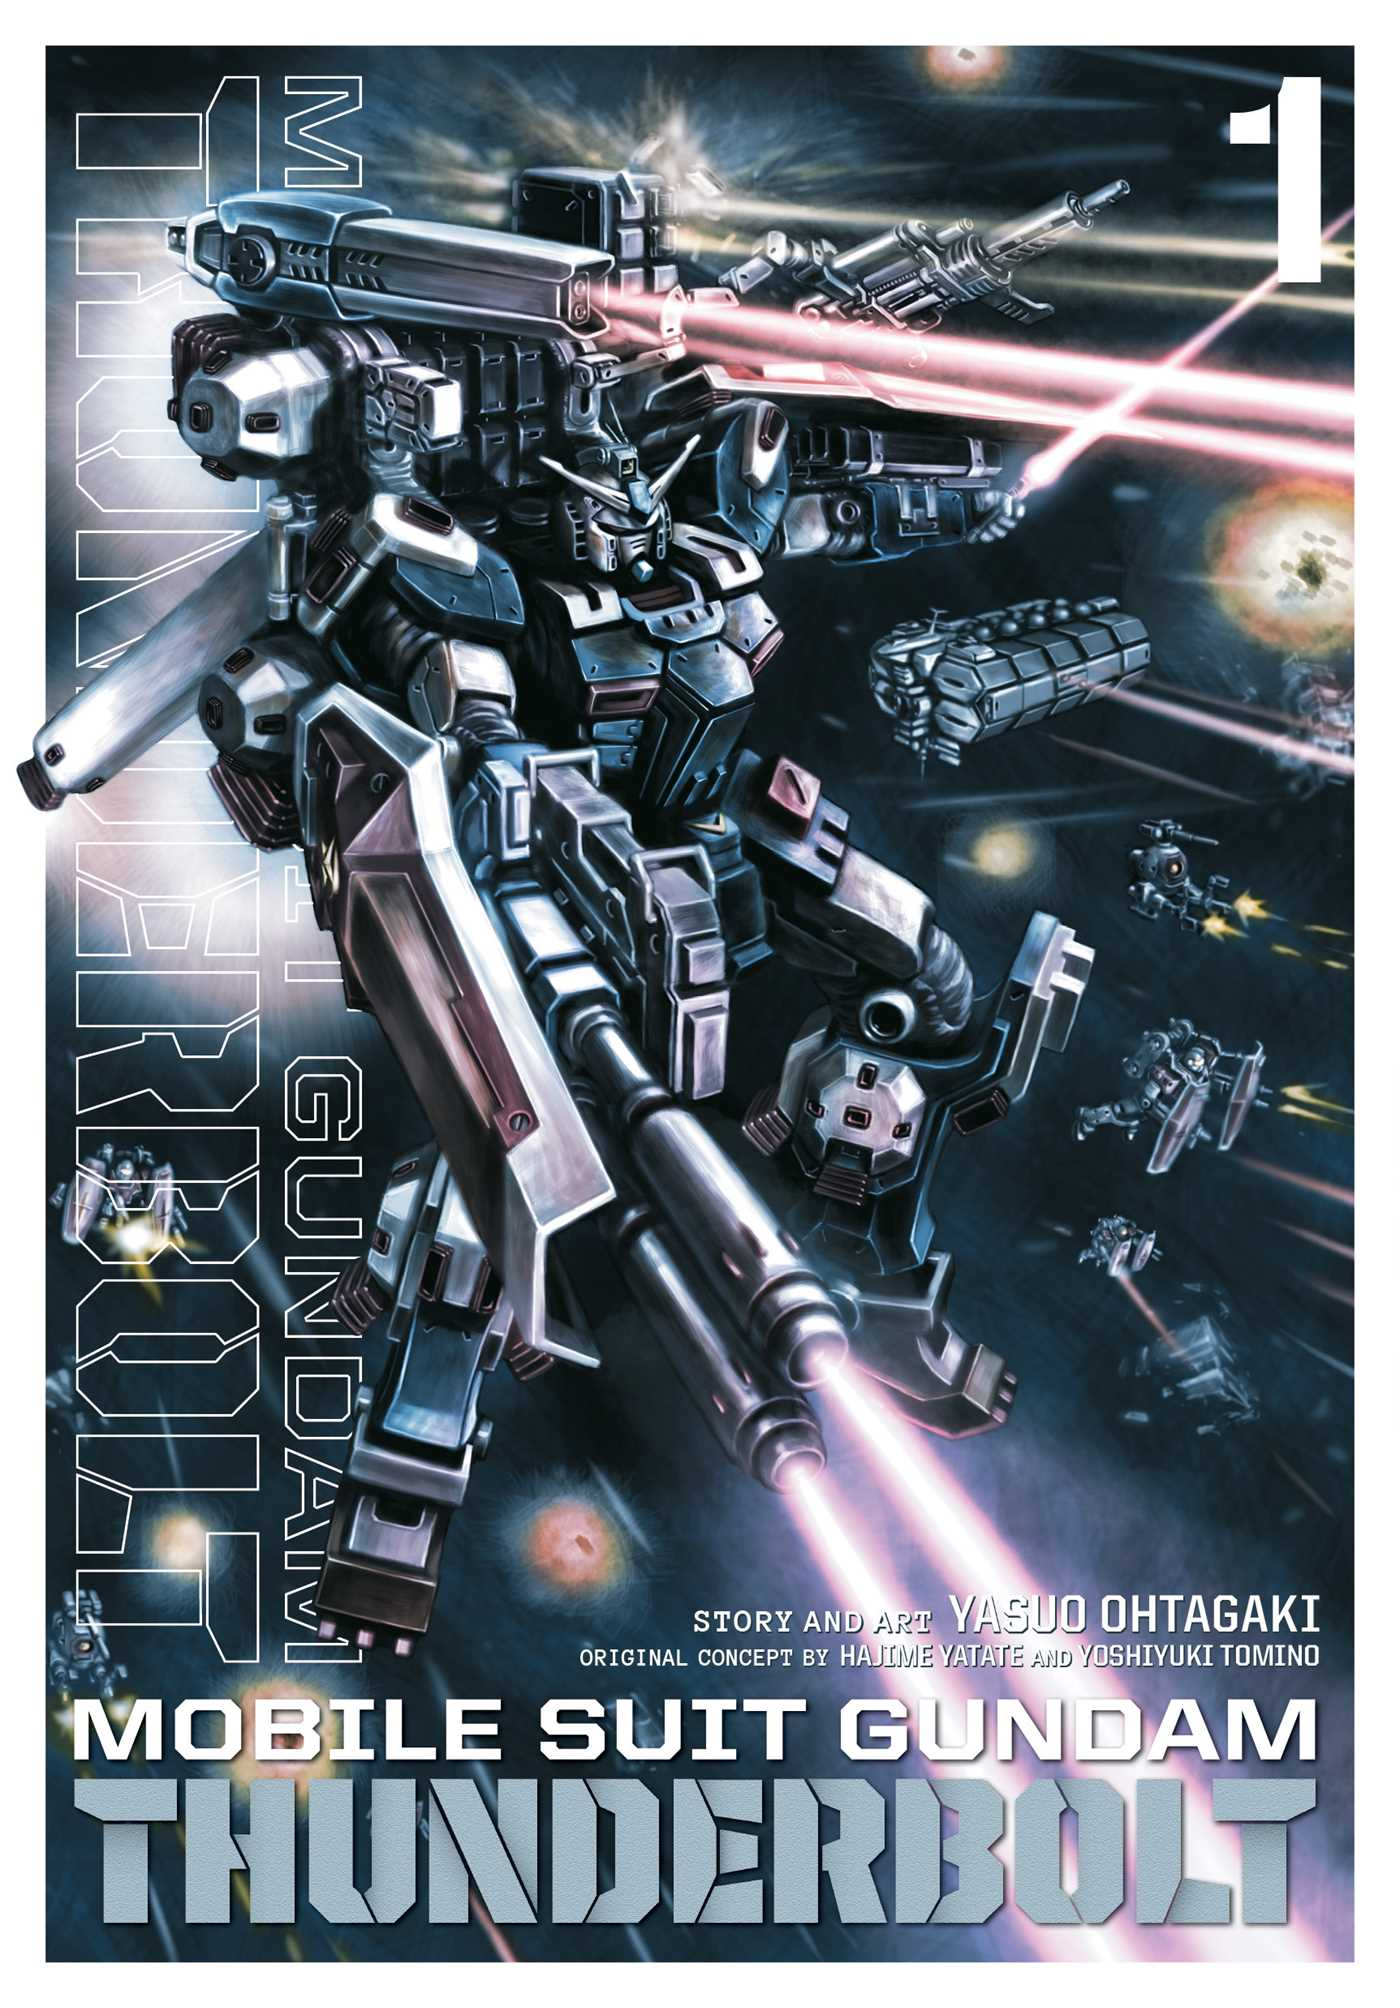 Mobile suit gundam thunderbolt vol 1 9781421590554 hr